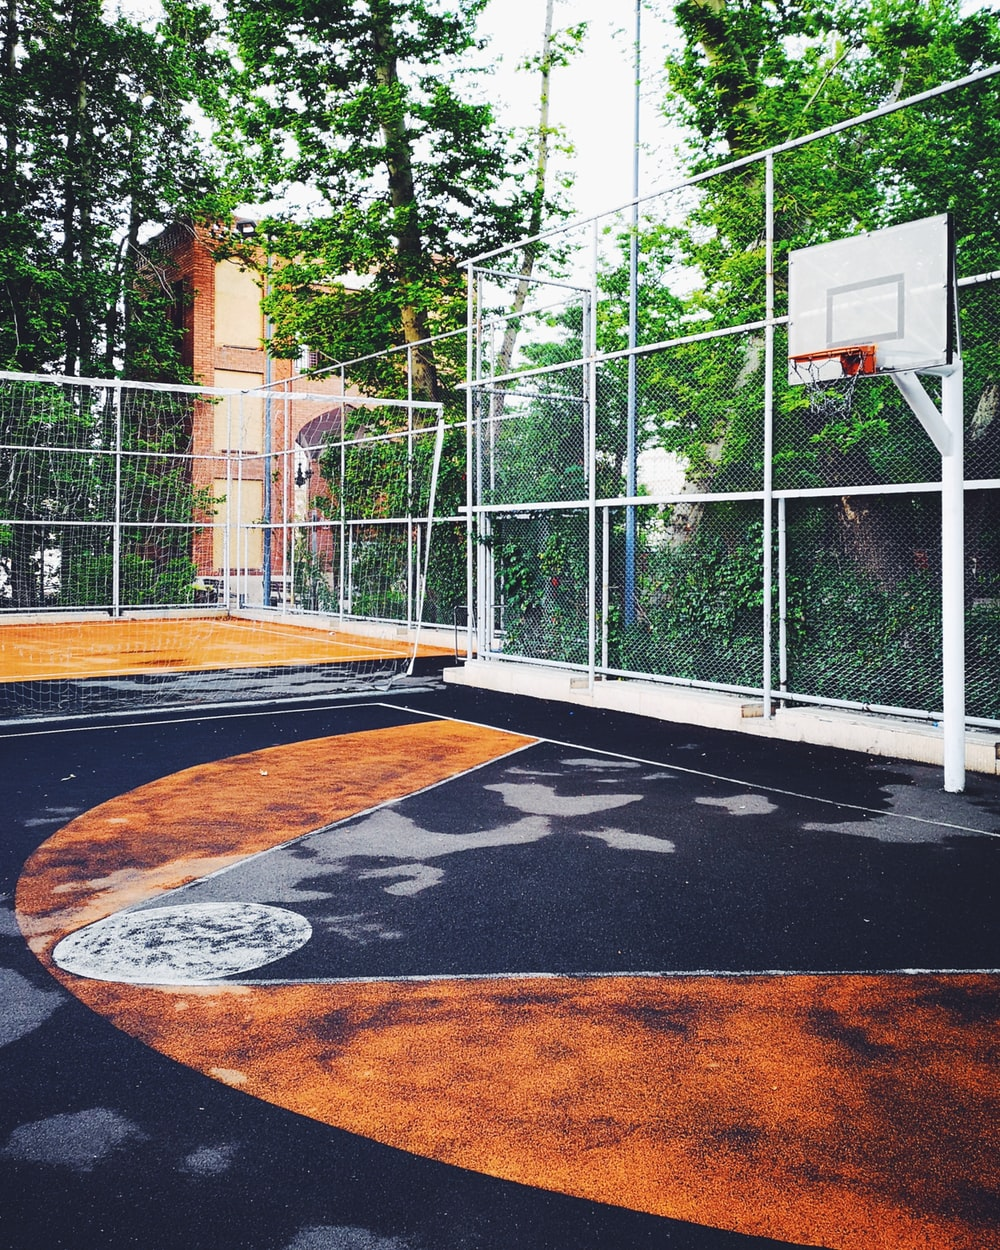 500 Basketball Court Pictures Download Free Images On Unsplash